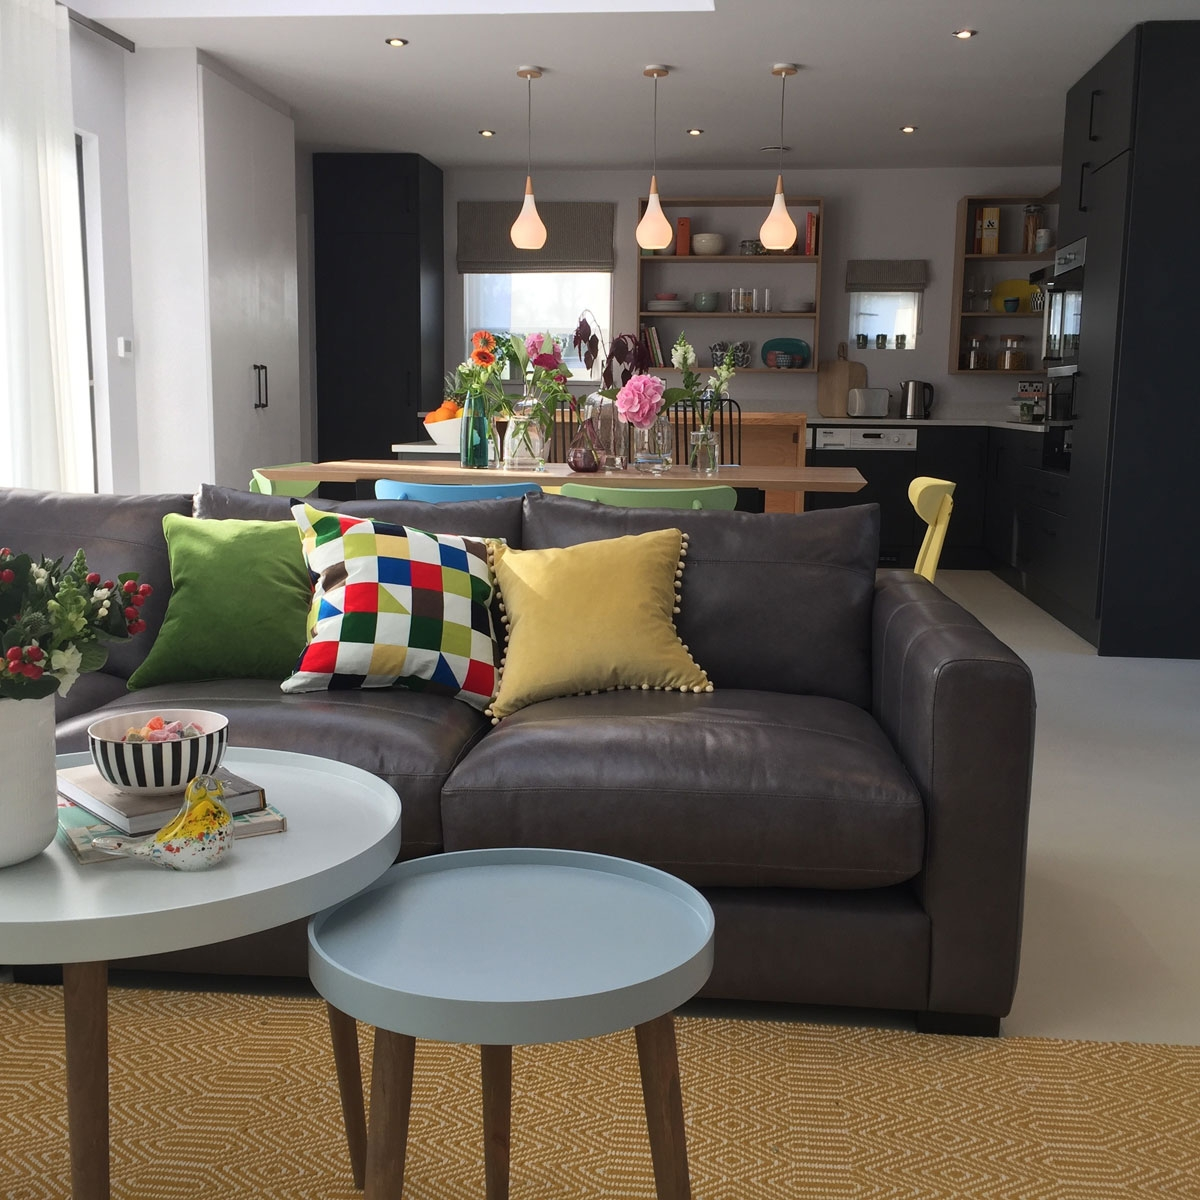 Living room open plan onto the kitchen and dining room. Space designed by Sophie Robinson for BBc1's DIY SOS, Isle of Sheppey episode.